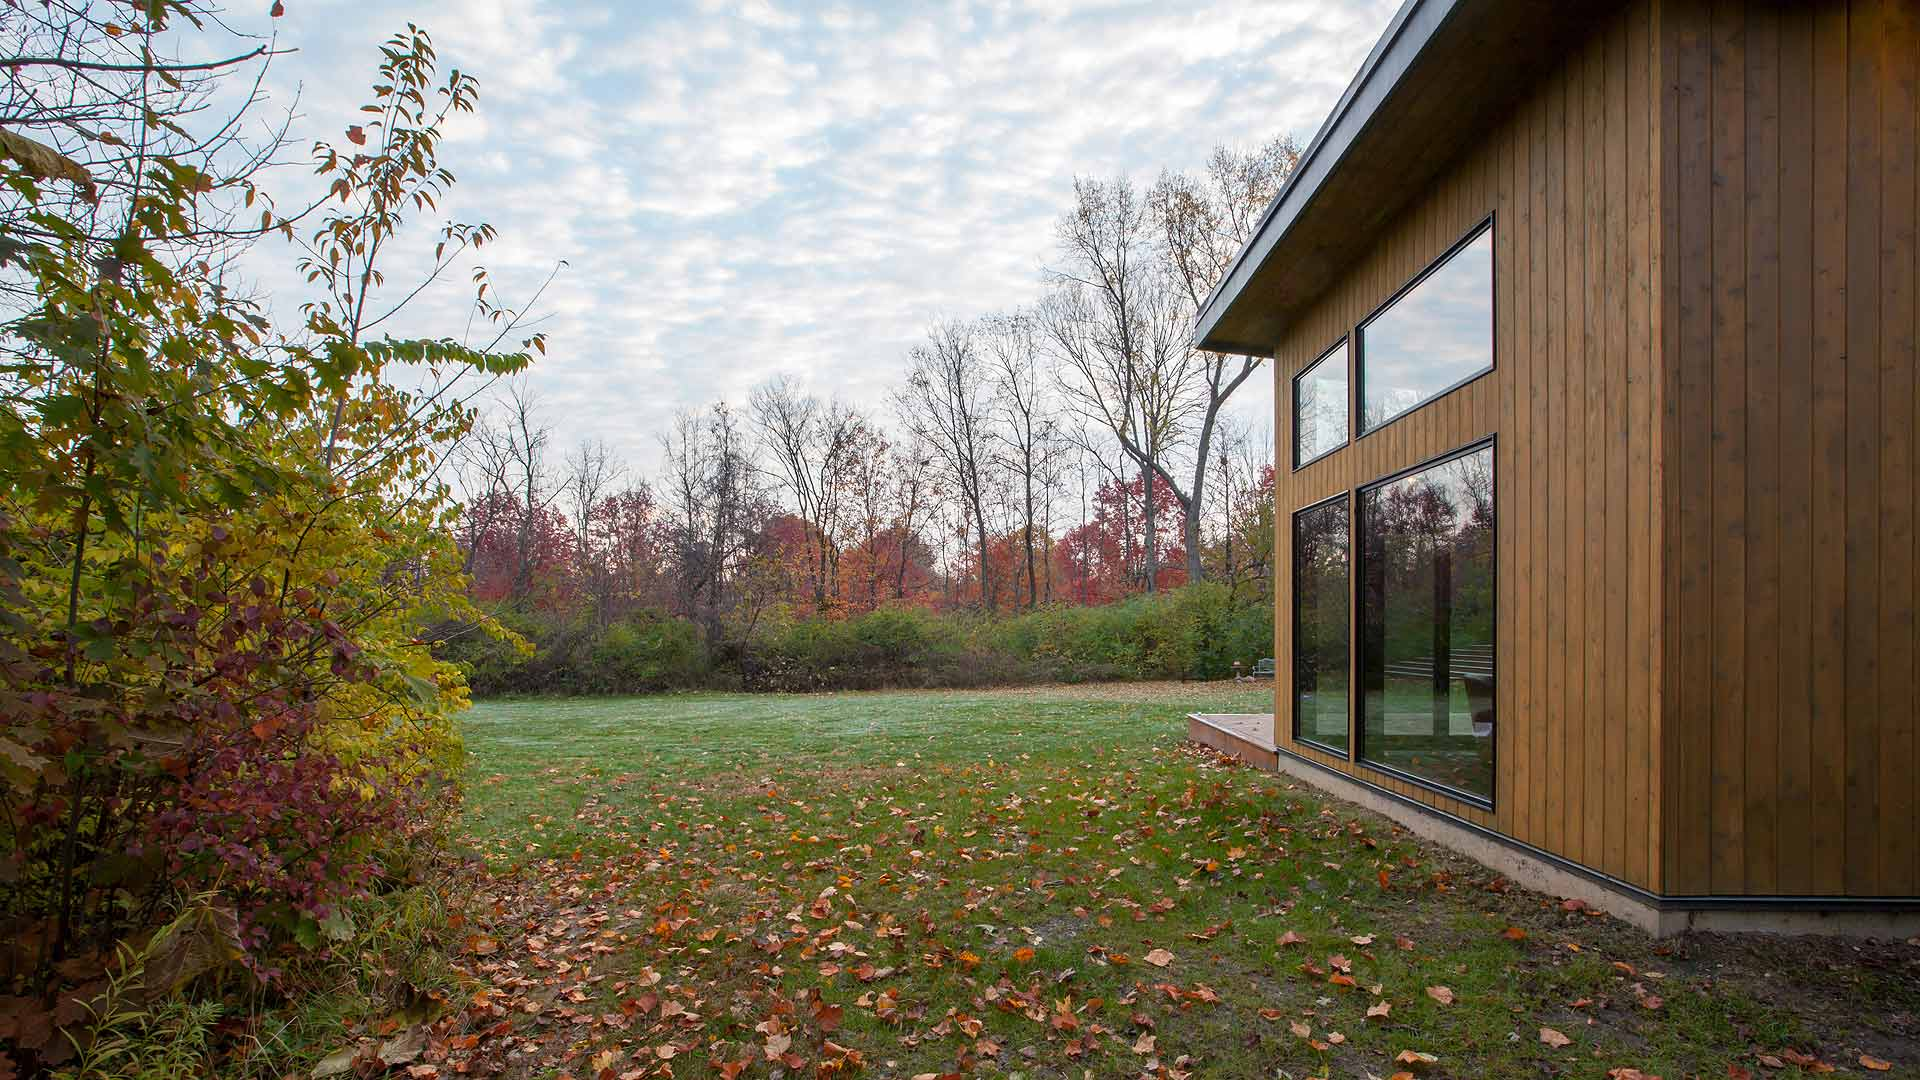 Rear Elevation Fall 2018 - Cigar Room - Midcentury Modern Addition - Brendonwood, Indianapolis - Christopher Short, Paul Reynolds, Architects, HAUS | Architecture For Modern Lifestyles - WERK | Building Modern - Paul Reynolds, Project Manager